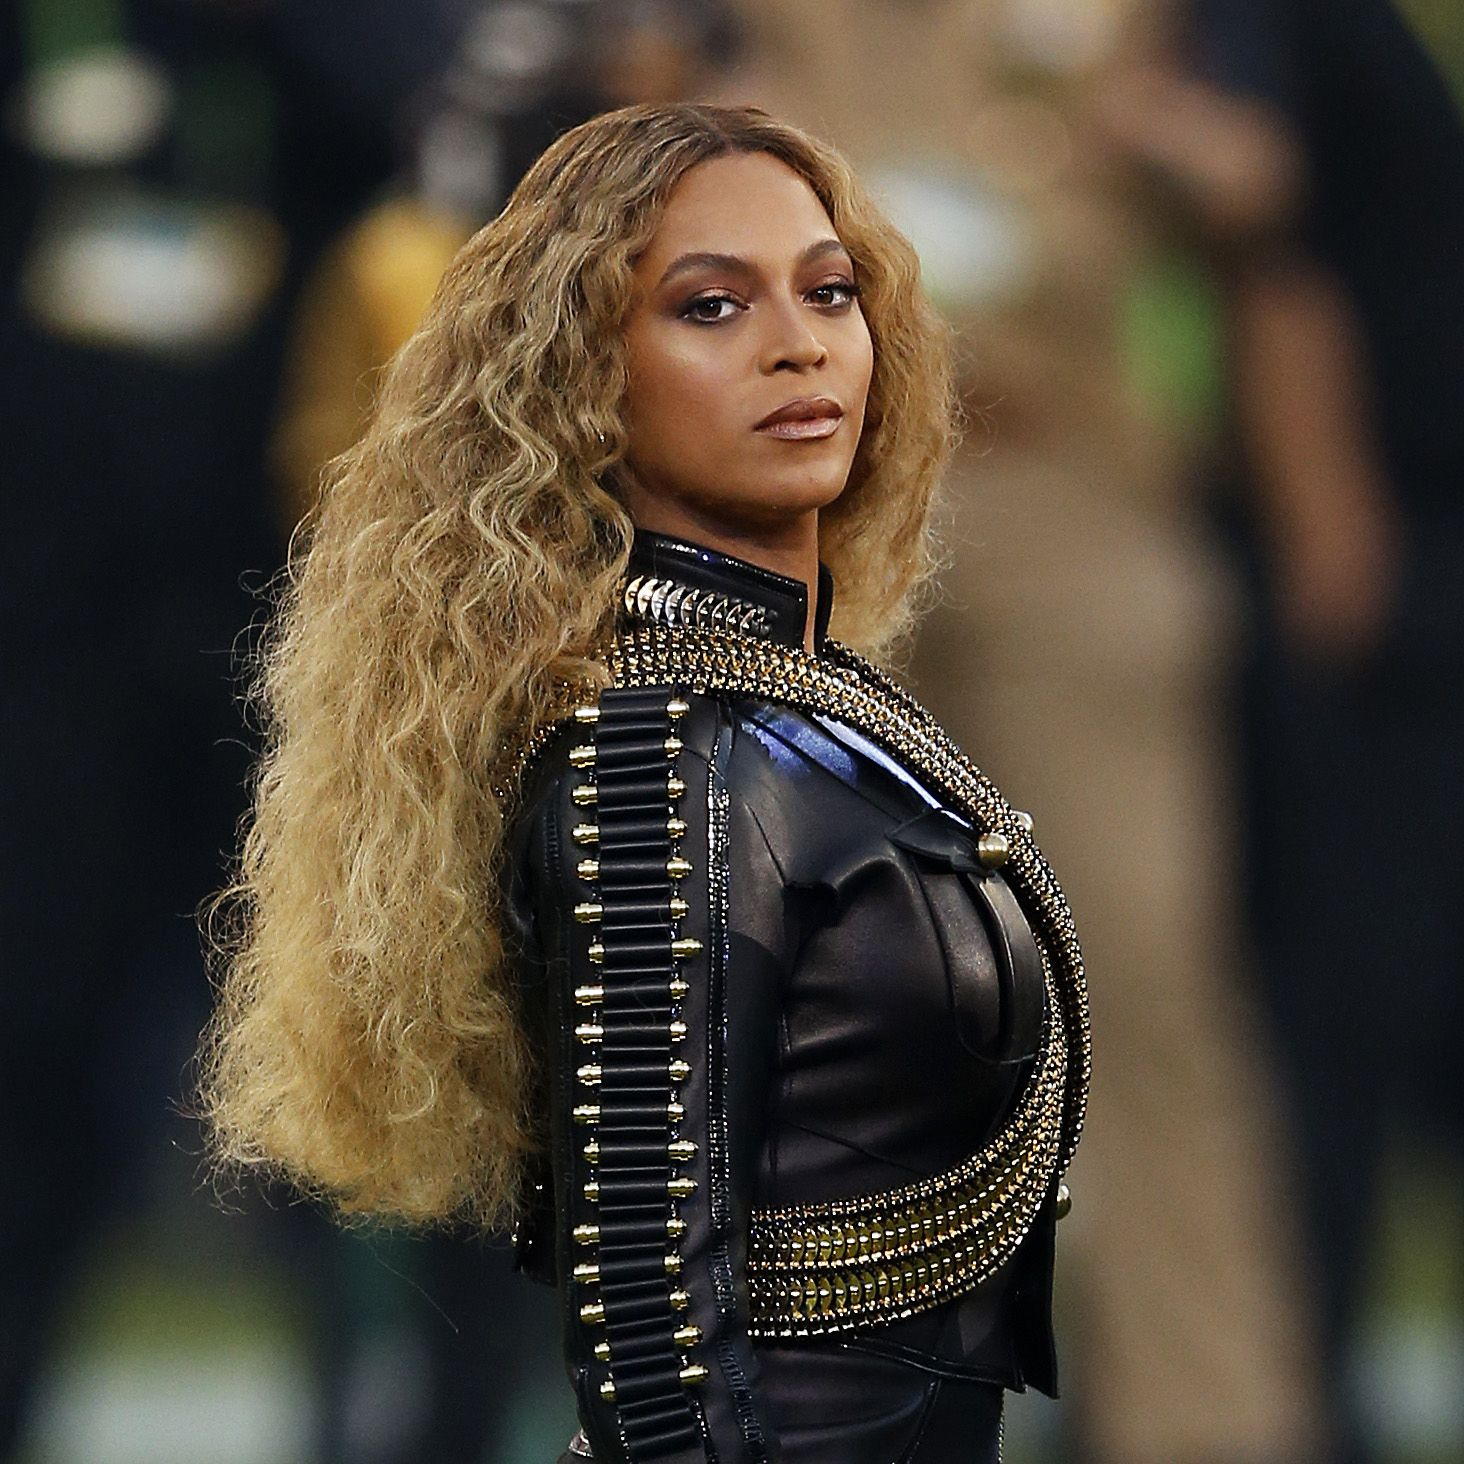 Beyonce performing at the Super Bowl 2016 half time show